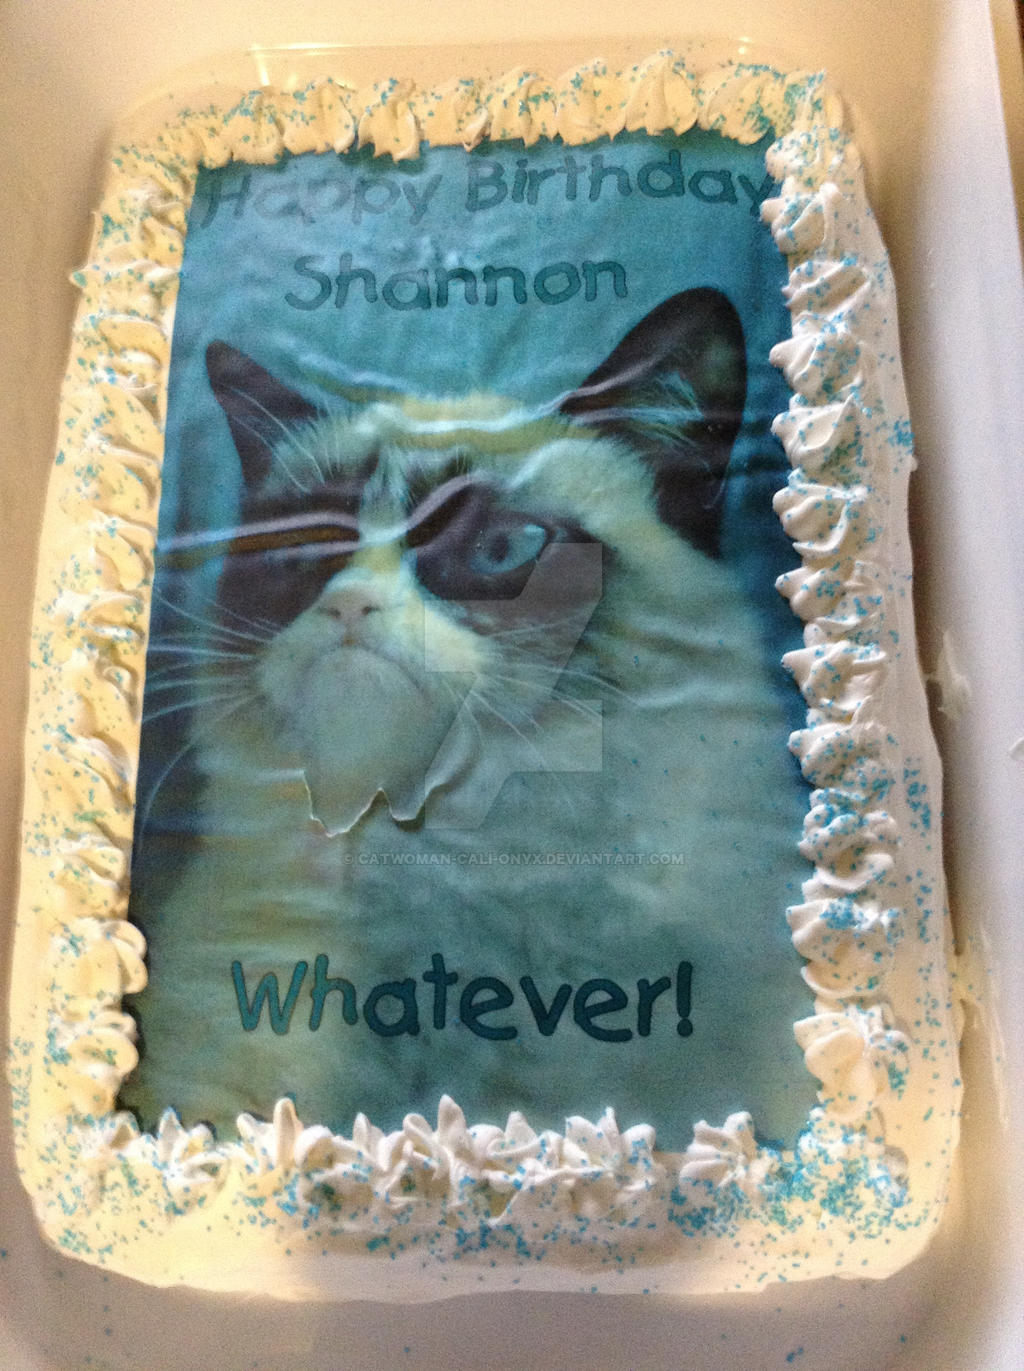 My Grumpy Cat Birthday Cake By CatWoman Cali Onyx